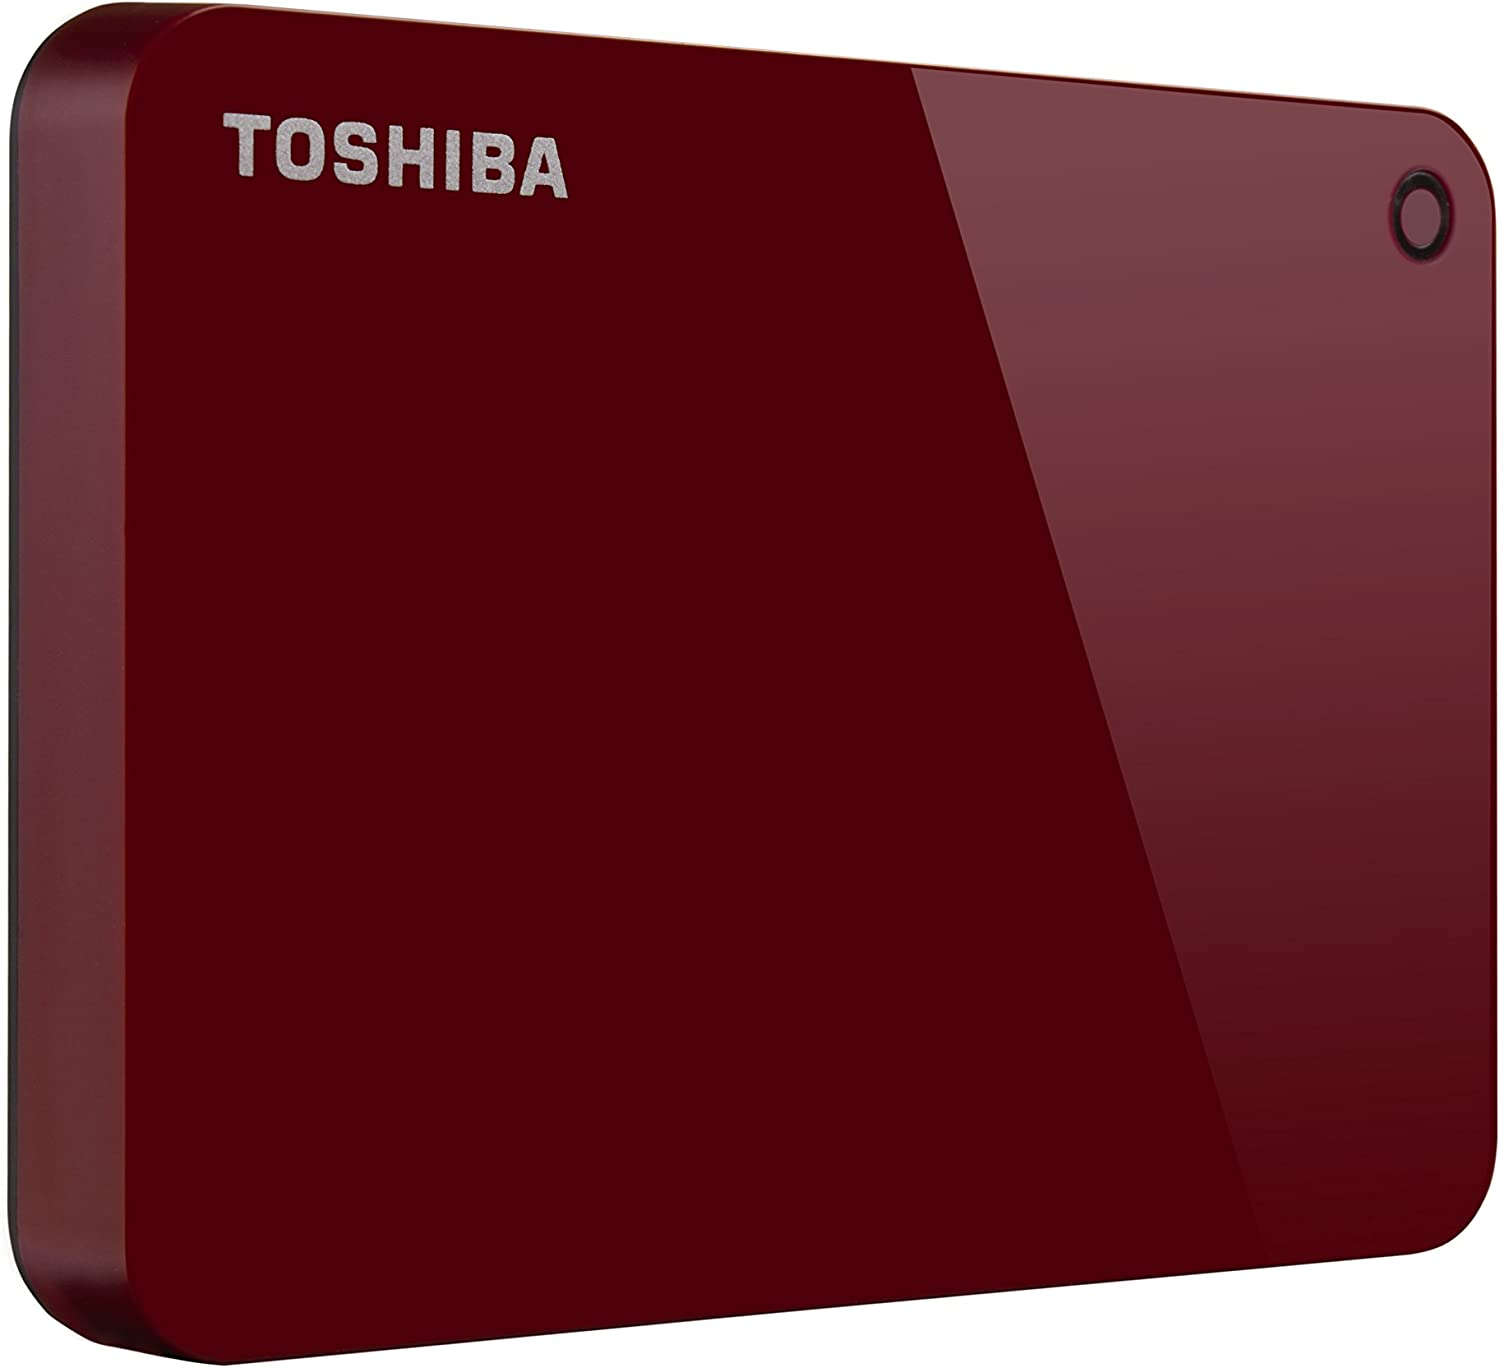 Toshiba HDtc910 x R3Aa Canvio Advance Disque Dur Externe Portable 1 to USB 3.0, Rouge